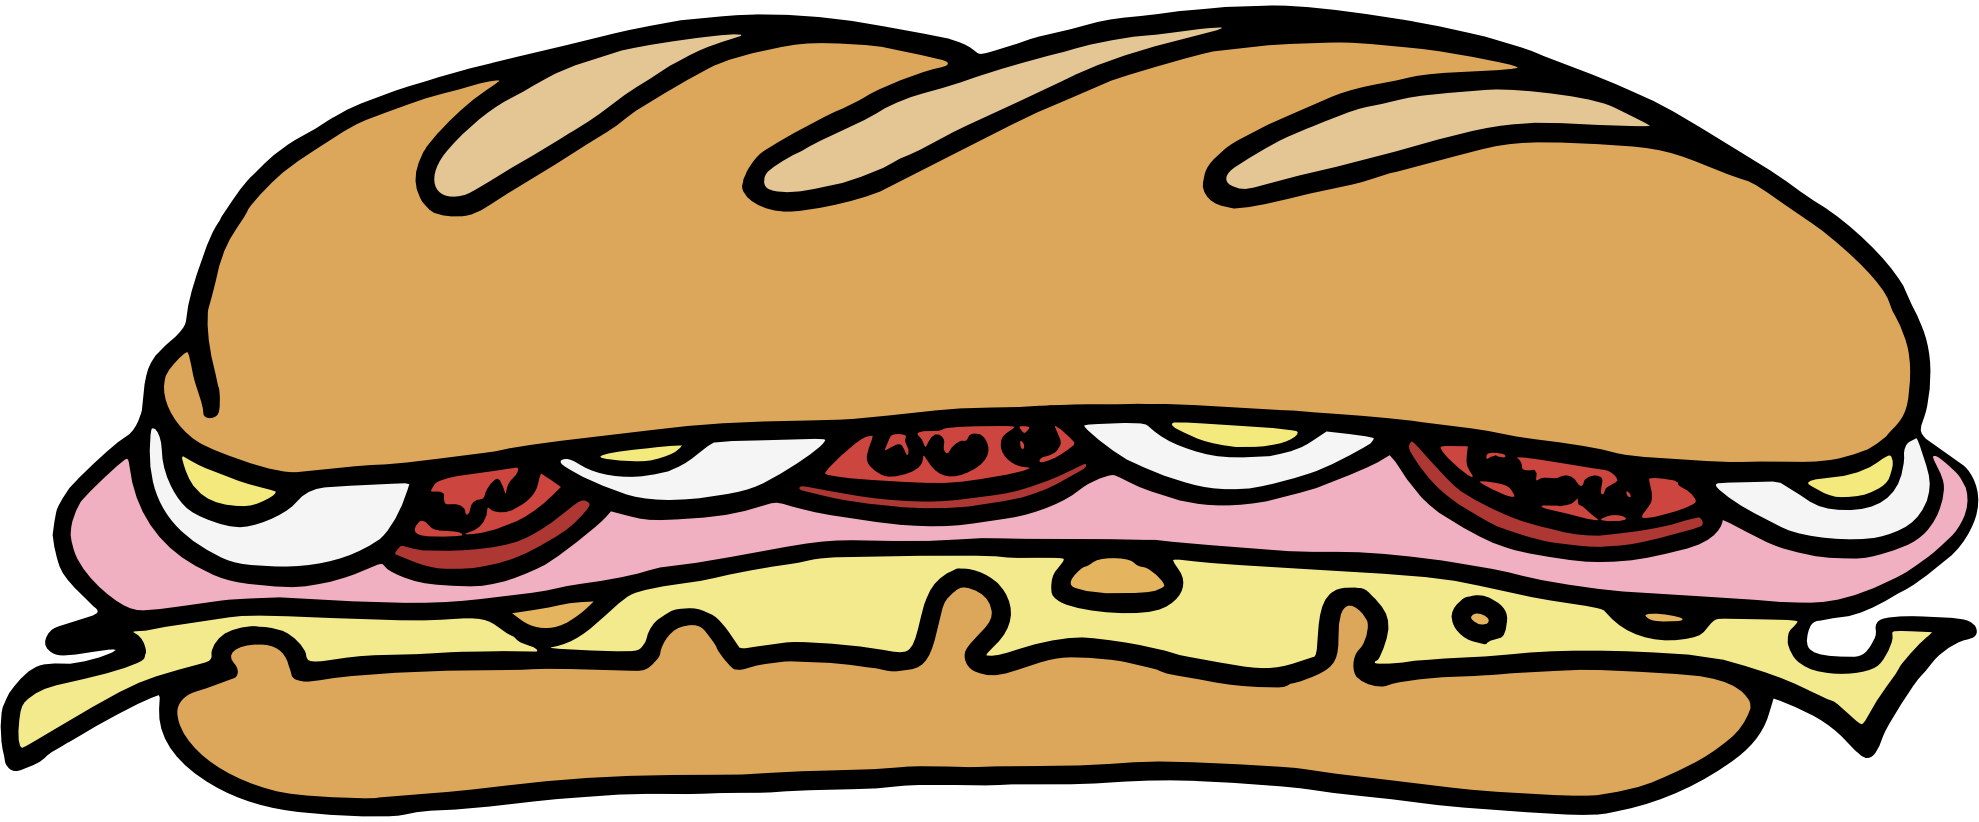 Ham clipart animated. Sandwich transparent pencil and